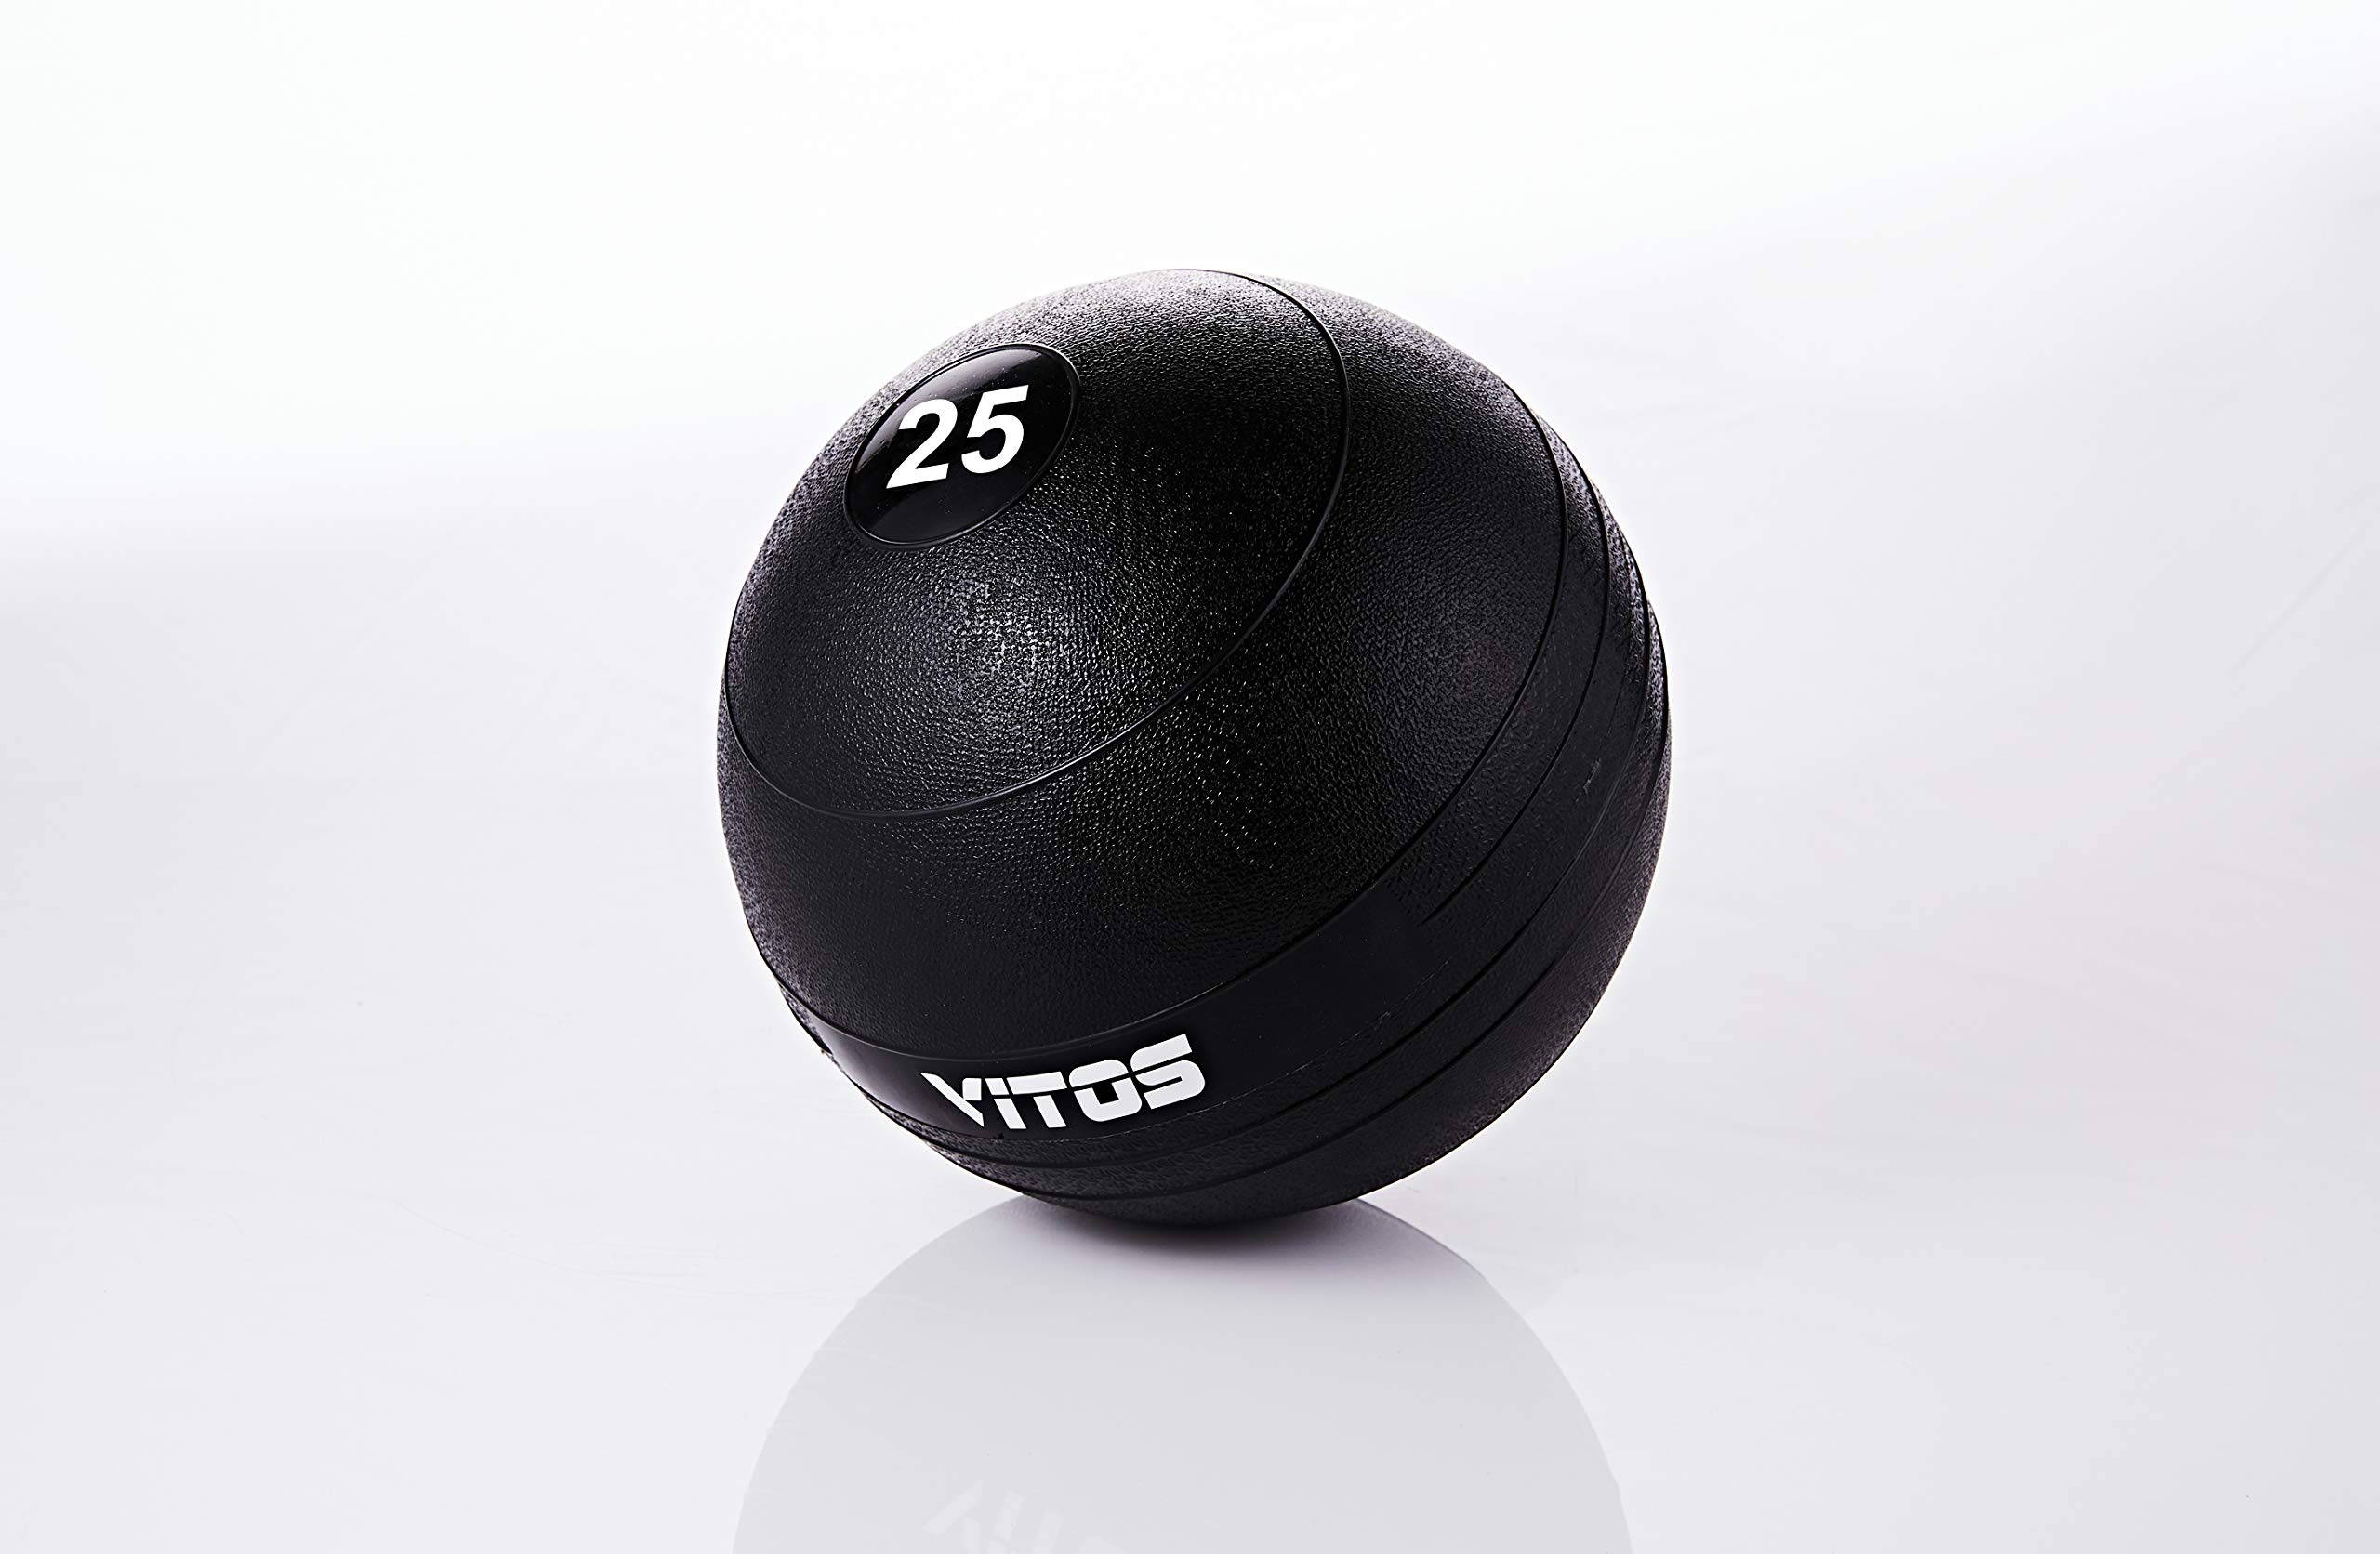 Vitos Fitness Exercise Slam Medicine Ball 10 to 70 Pounds | Durable Weighted Gym Accessory Strength Conditioning Cross Training Core Squats Lunges Spike Ball Rubber Weight Workout (25)